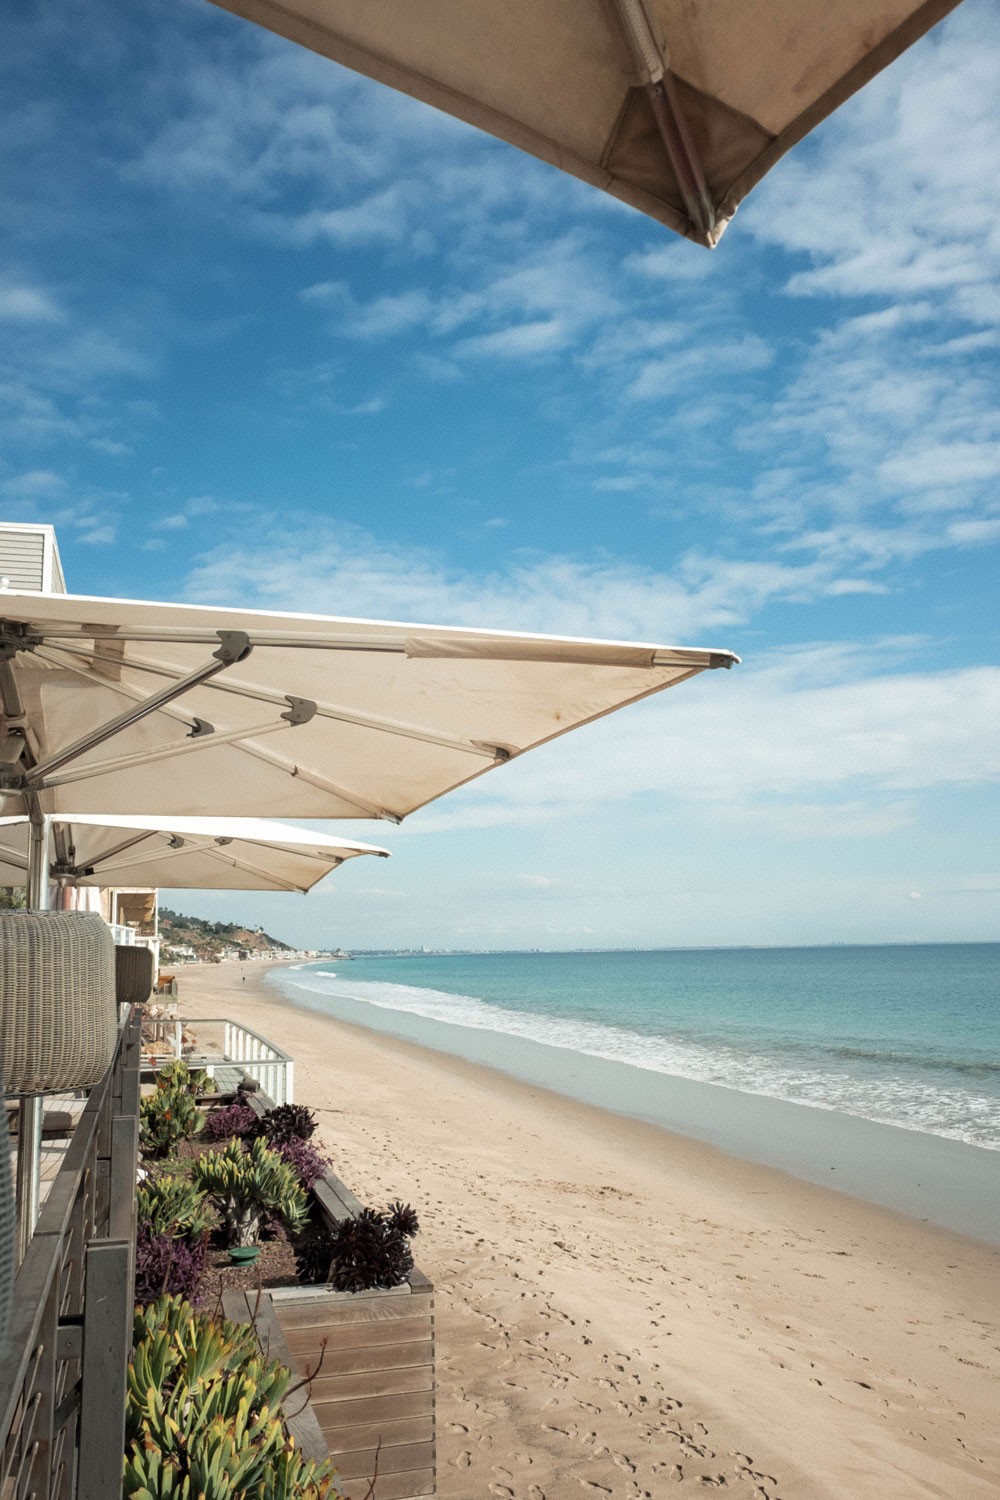 nobu malibu reviews by To Vogue or Bust